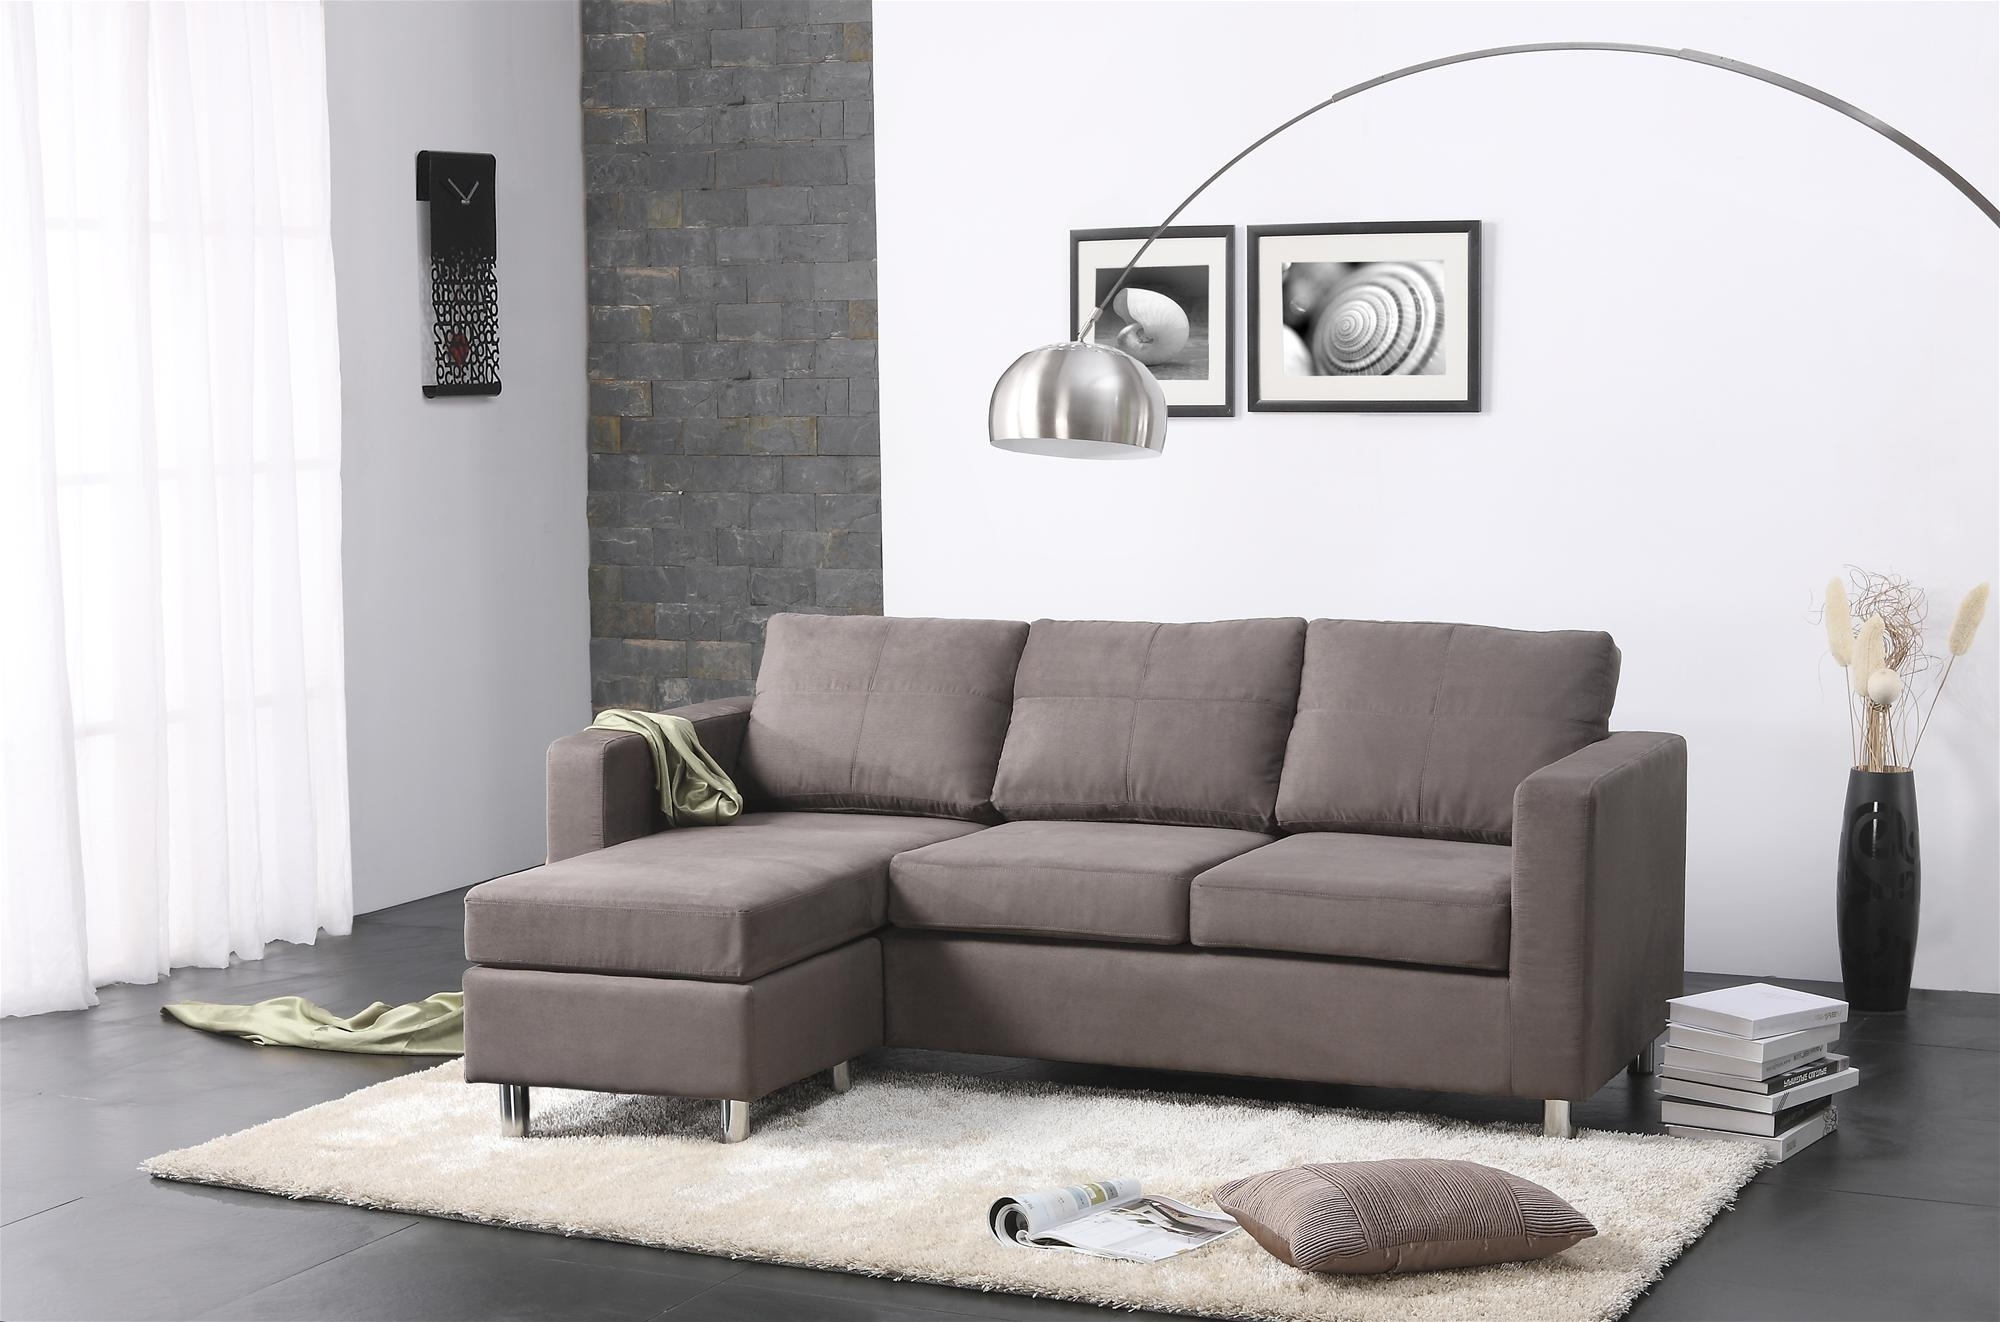 Narrow Spaces Sectional Sofas With Regard To Latest Sofa : Small Sofas For Small Spaces Tiny Sleeper Sofa Retro Sofa (View 11 of 20)